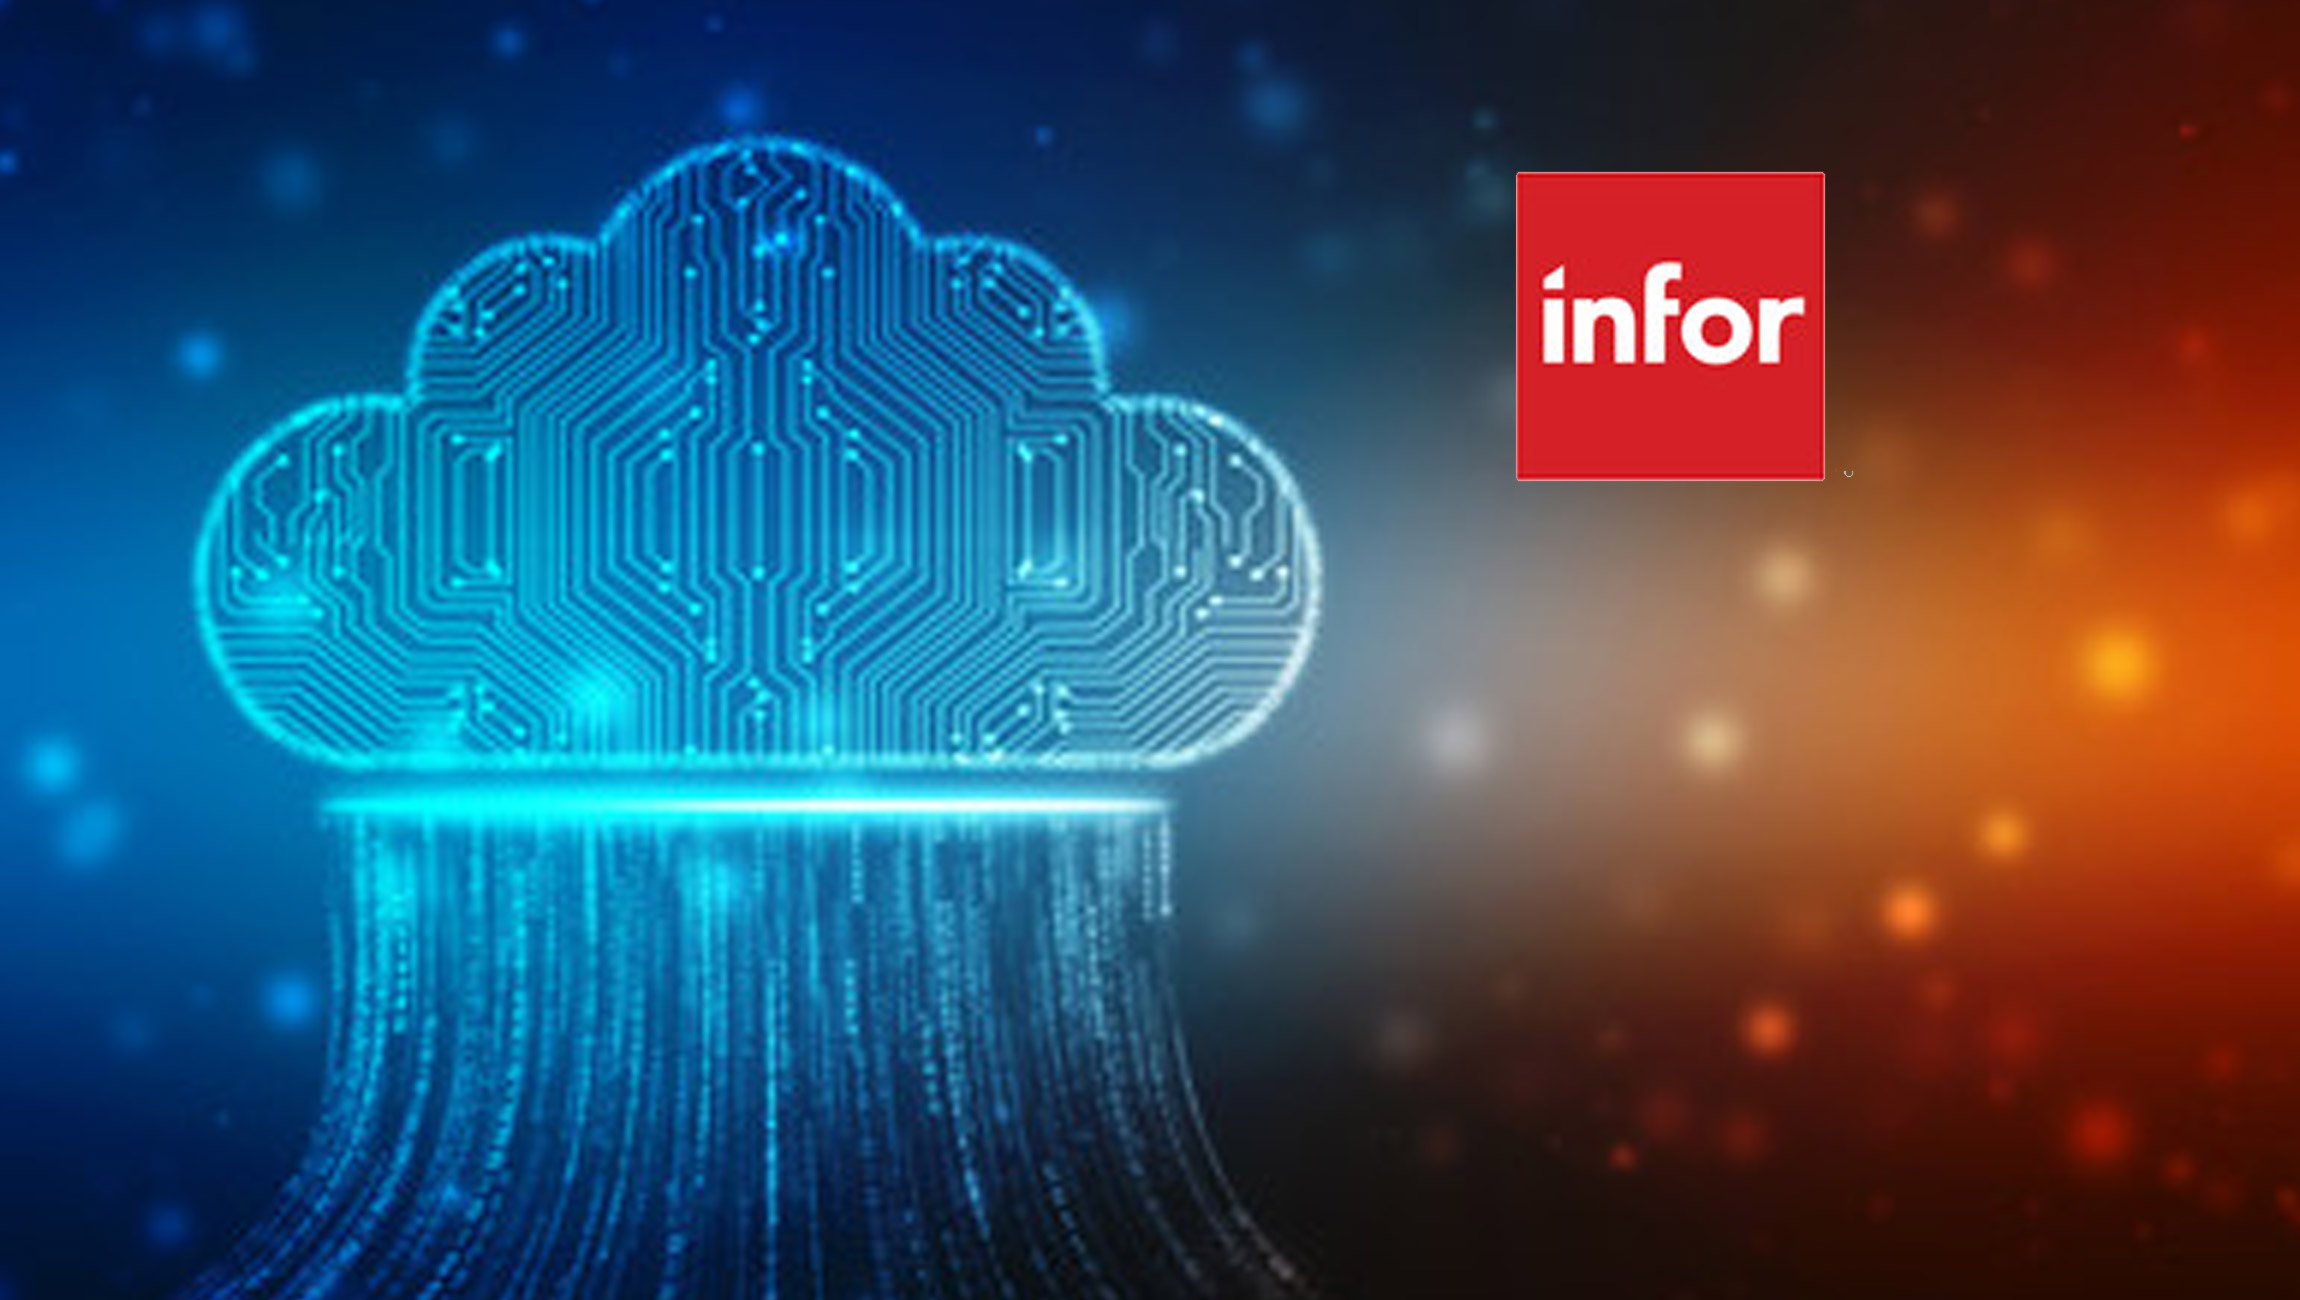 Infor Positioned as a Leader, for 3rd Consecutive Time, in Gartner Magic Quadrant for Warehouse Management Systems